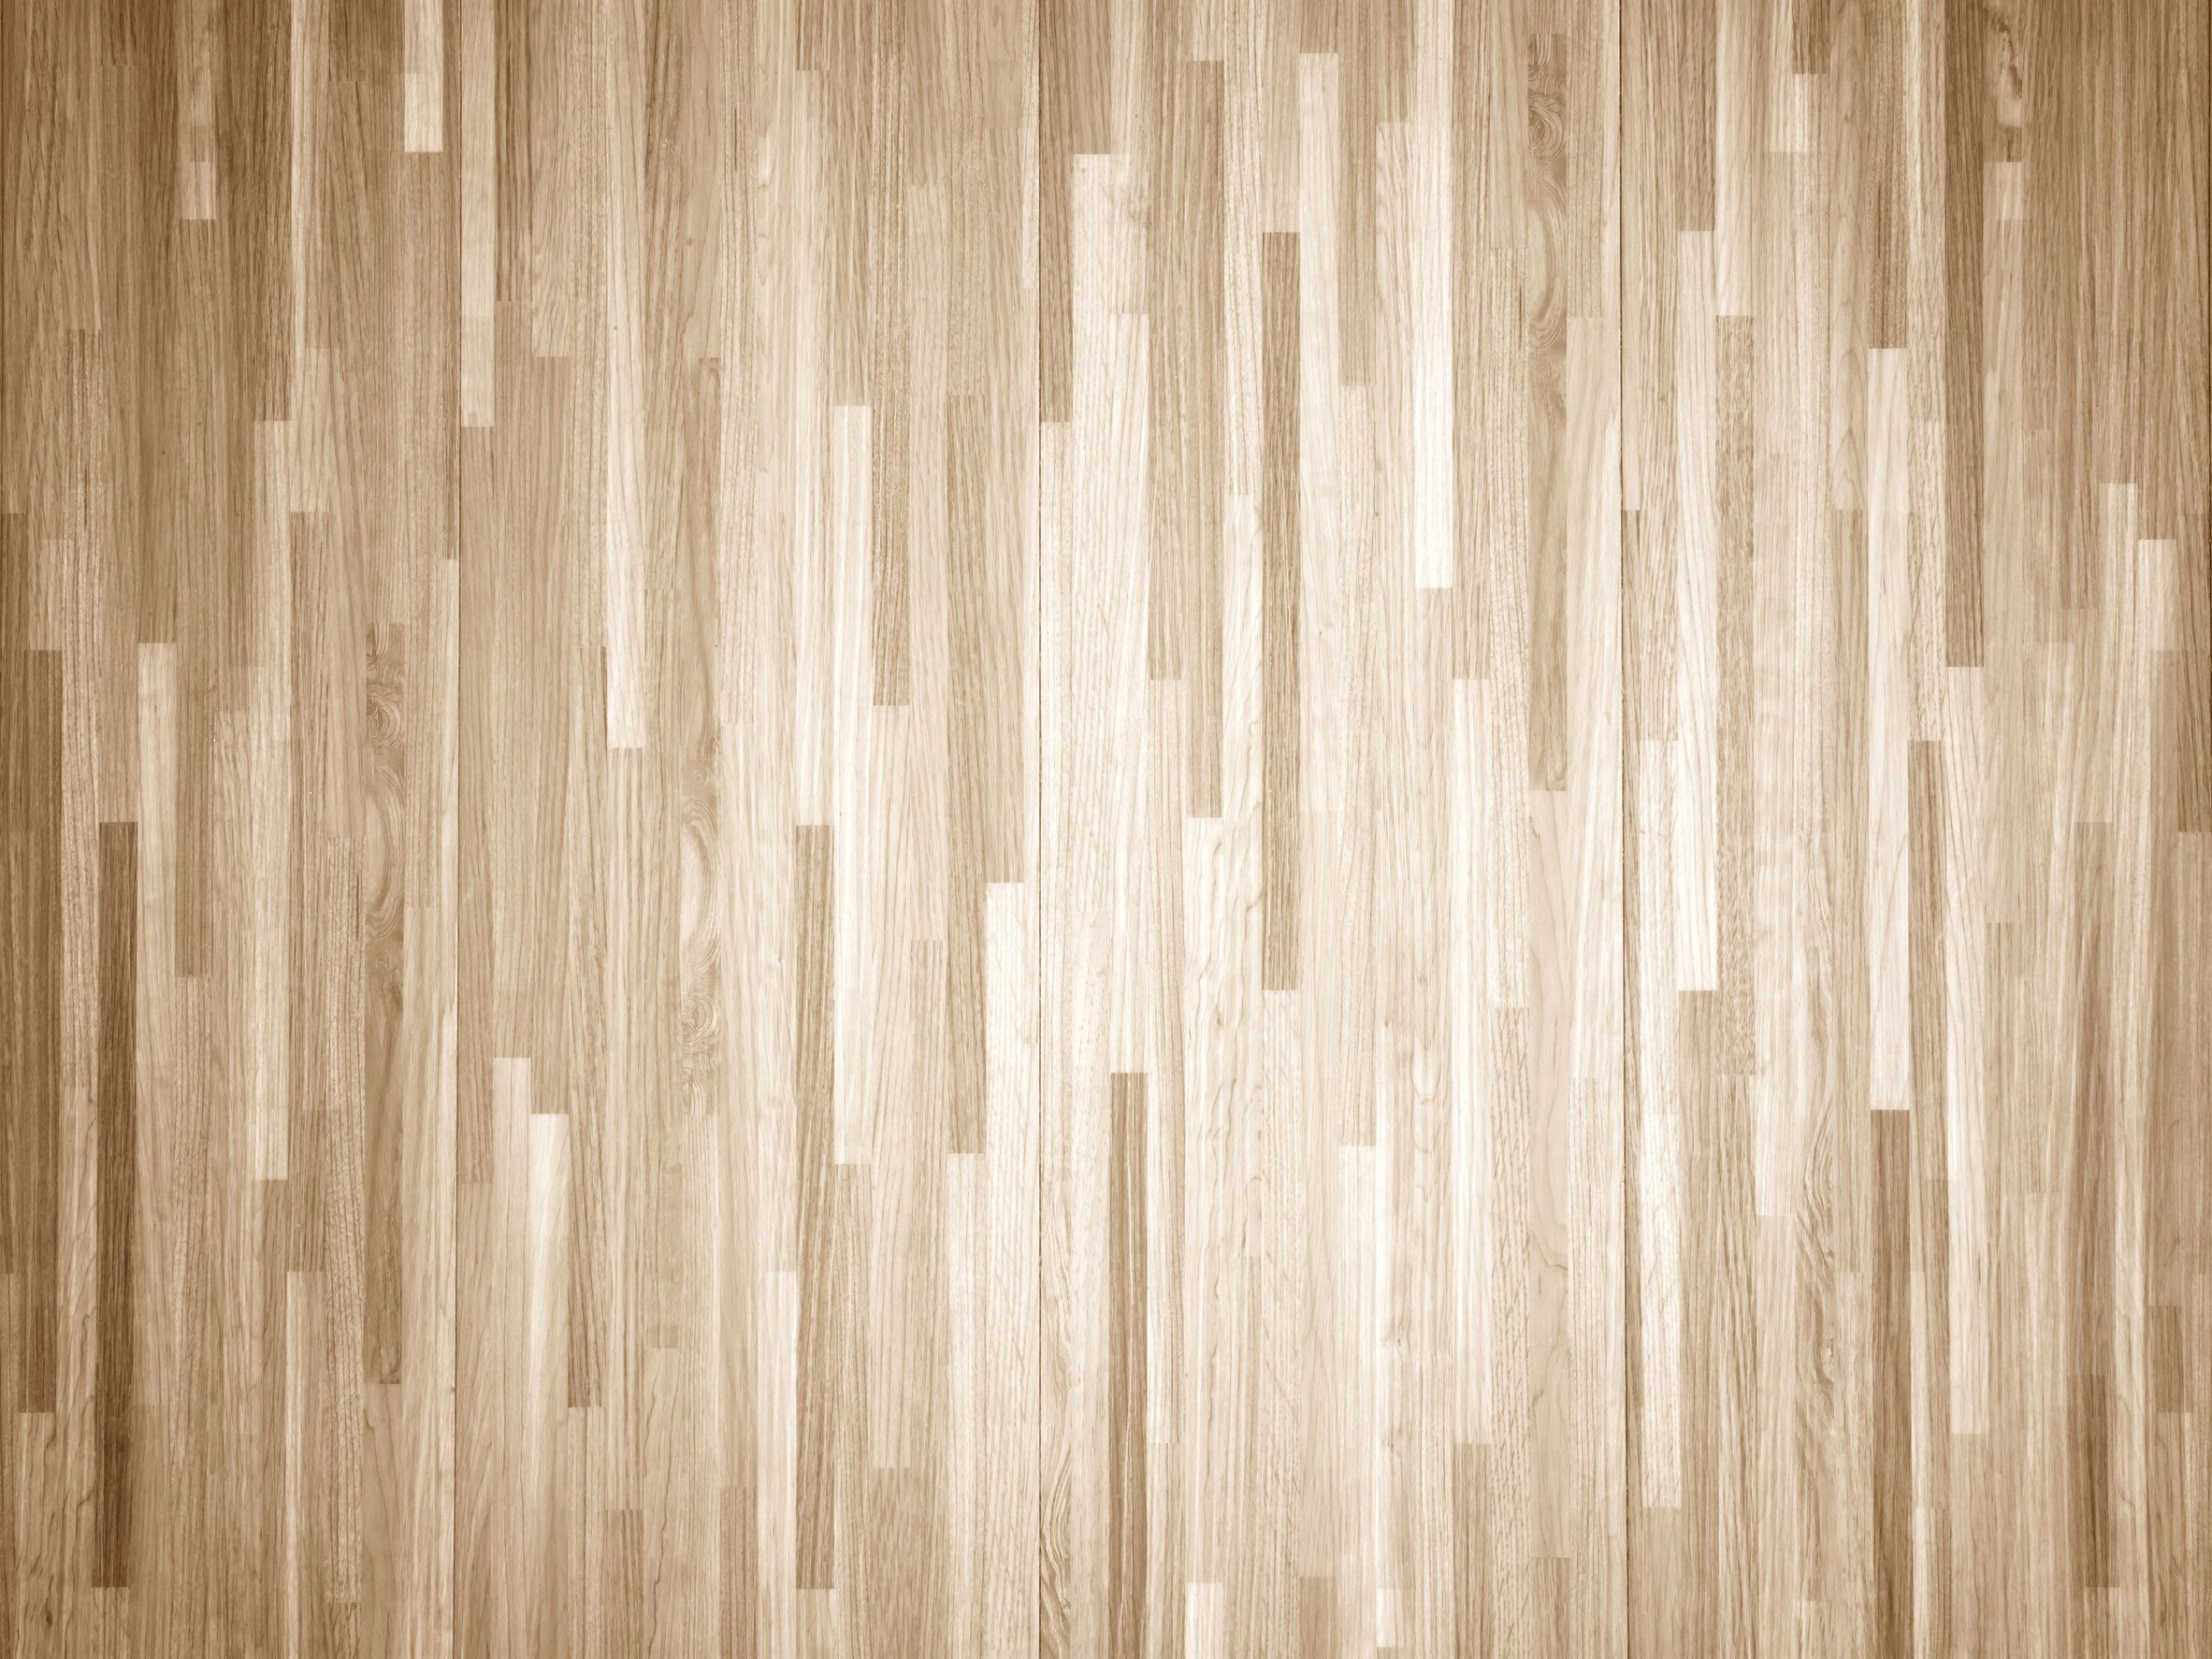 can i refinish hardwood floors myself of how to chemically strip wood floors woodfloordoctor com intended for you